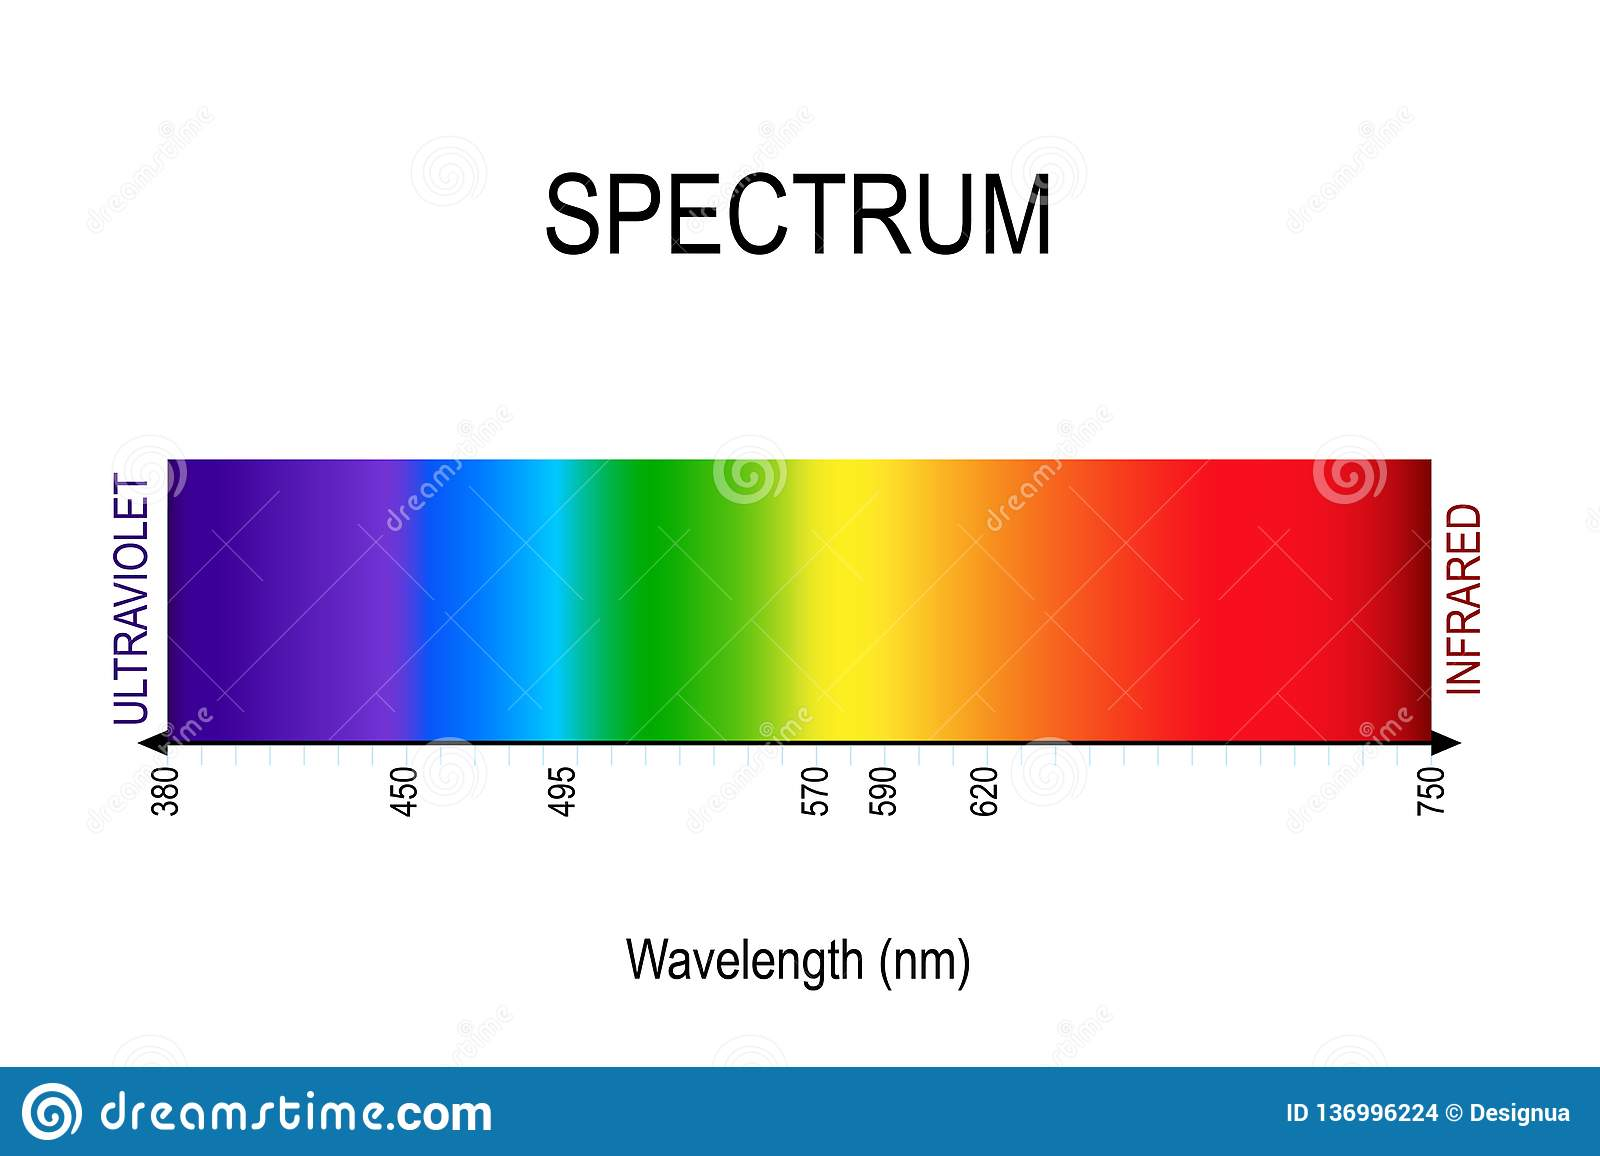 Spectrum Visible Light Infrared And Ultraviolet